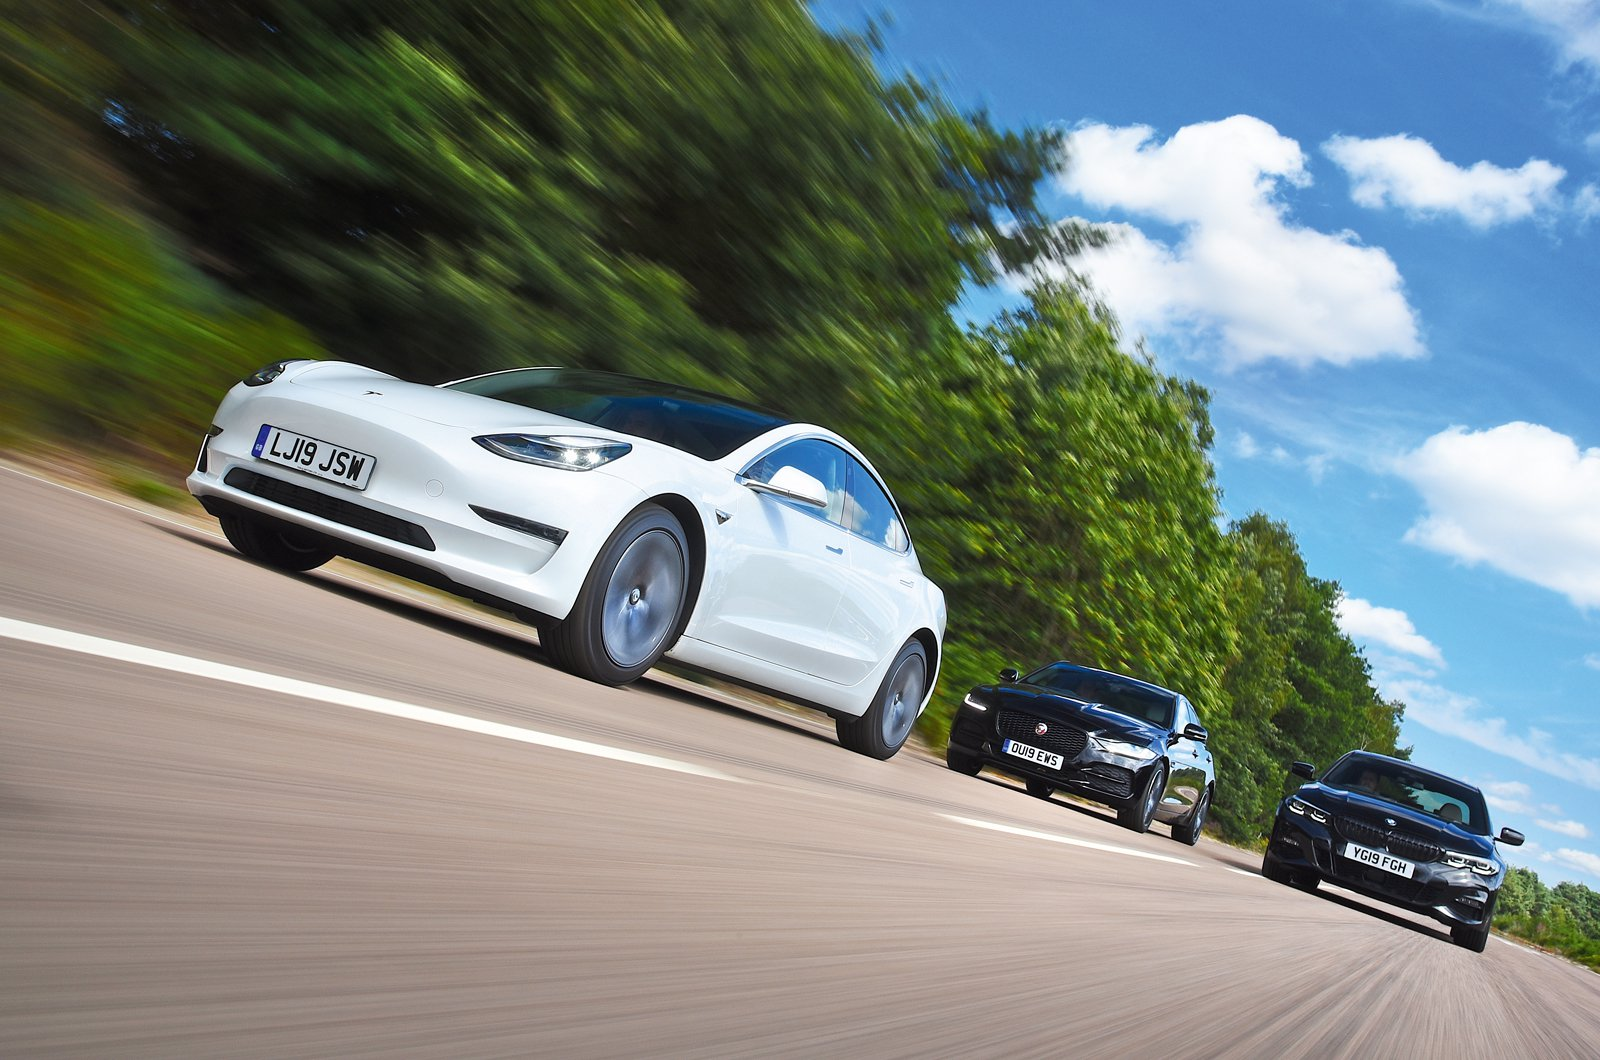 Tesla Model 3 driving with BMW 3 Series and Jaguar XE